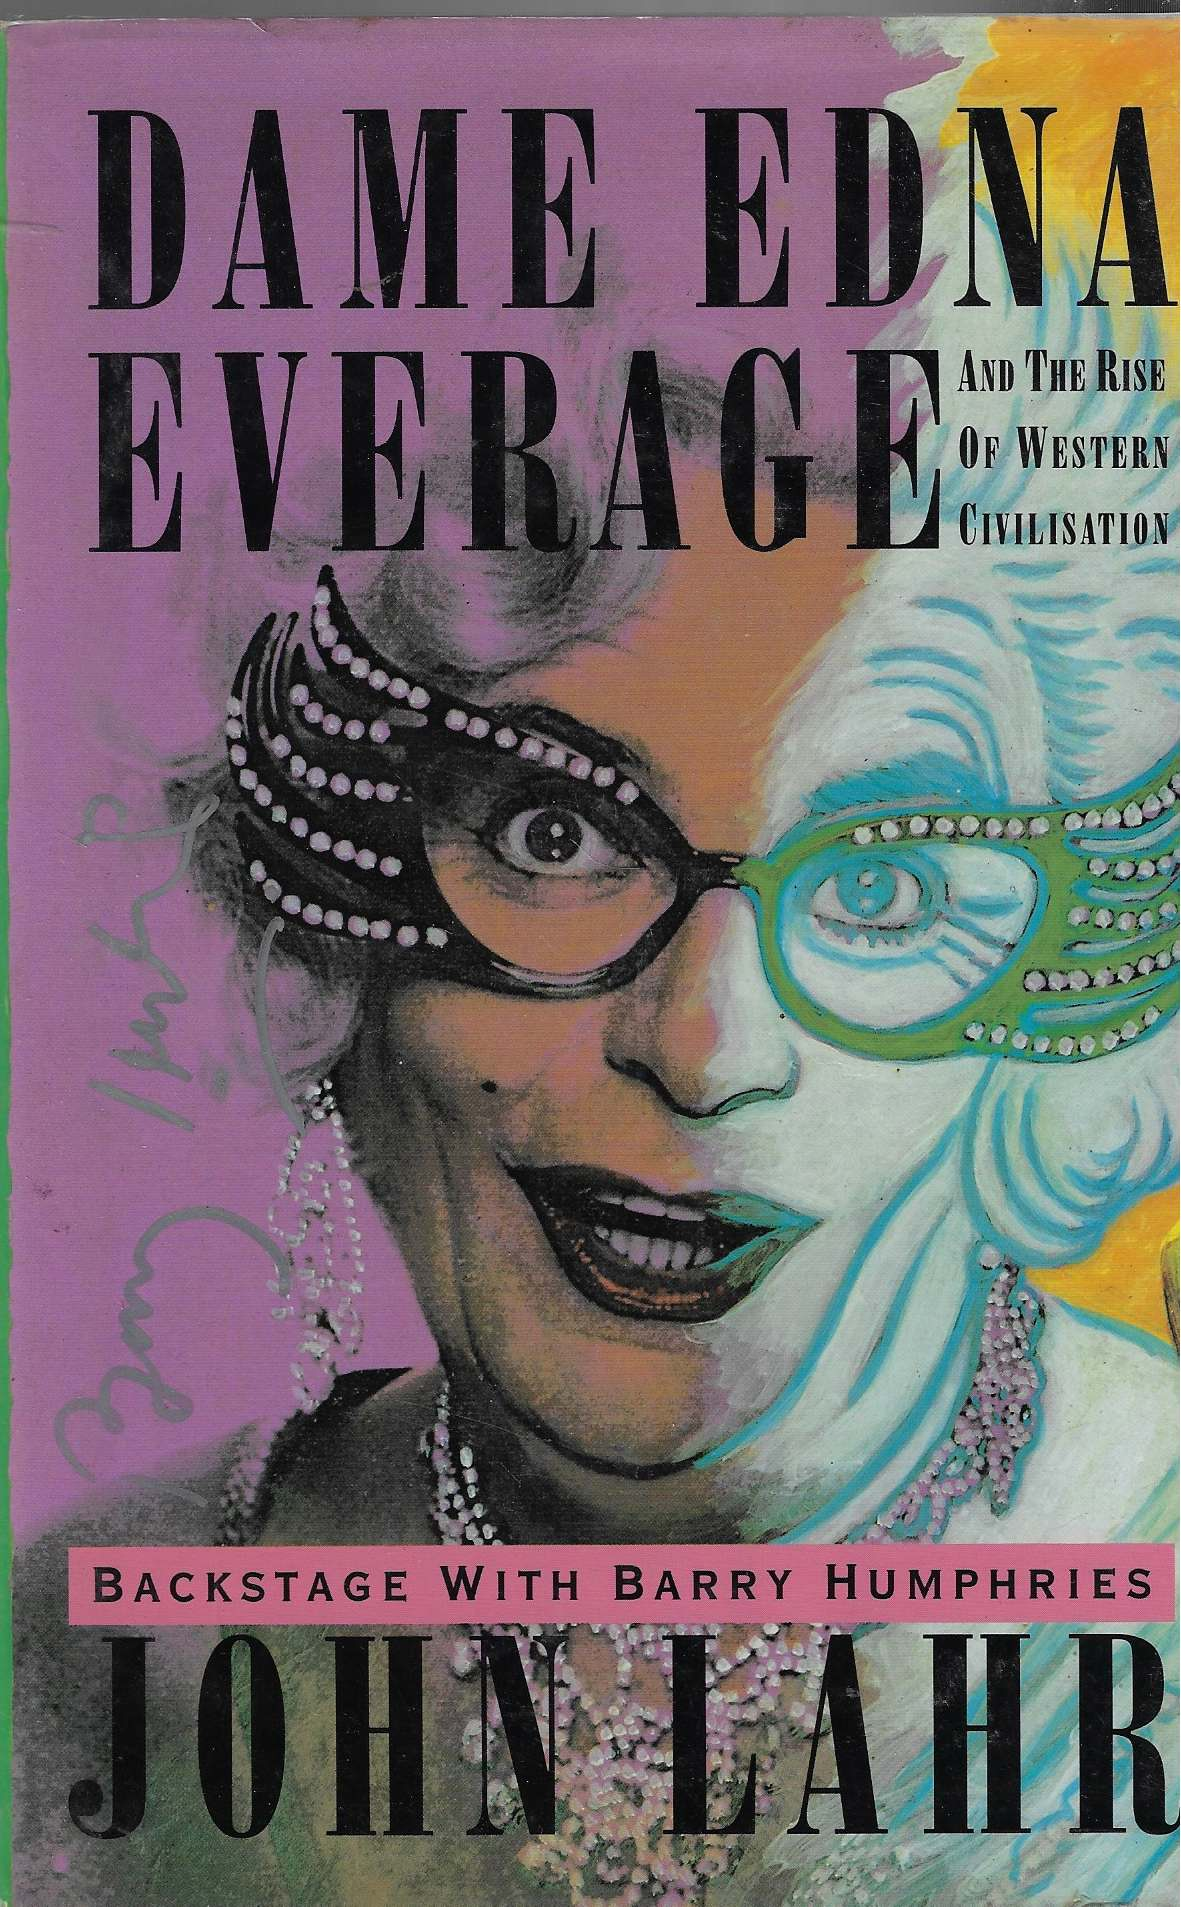 Image for Dame Edna Everage and the Rise of Western Civilisation - Backstage with Barry Humphries